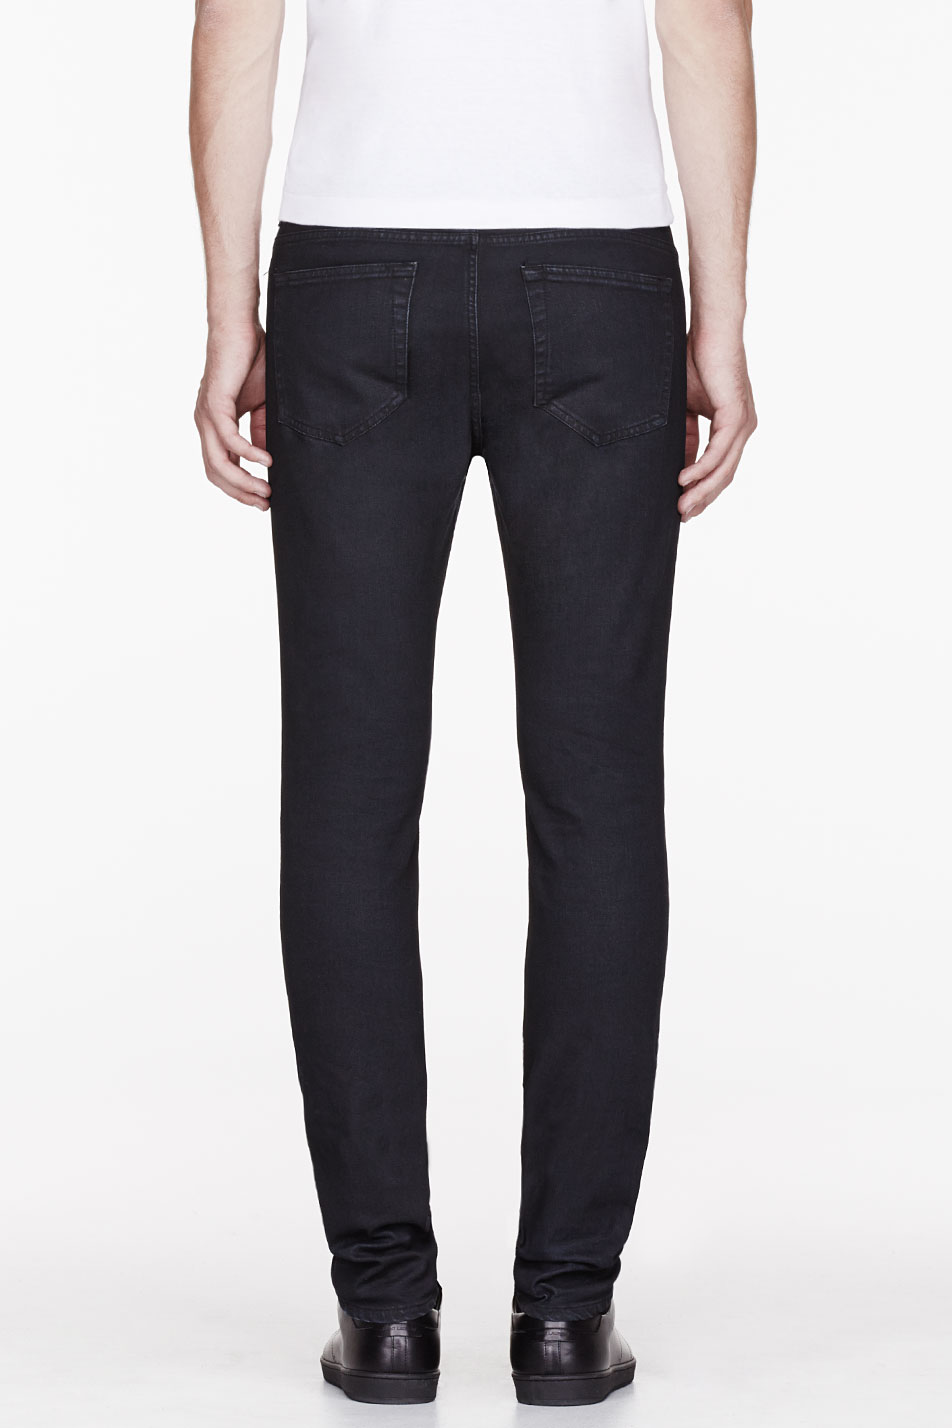 acne studios black ace sing jeans in blue for men lyst. Black Bedroom Furniture Sets. Home Design Ideas